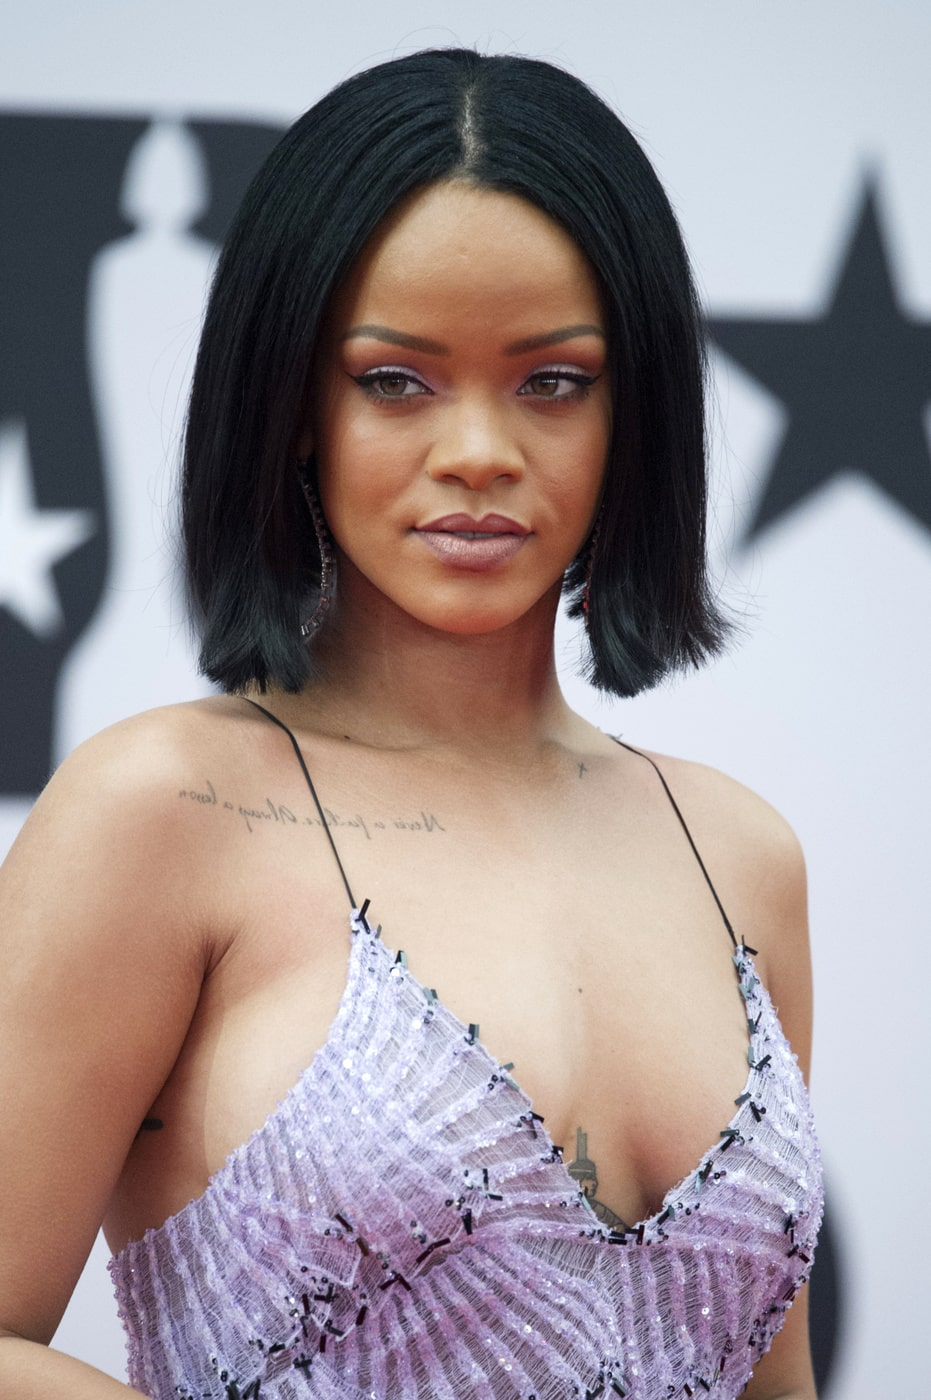 Rihanna at the Brit Awards